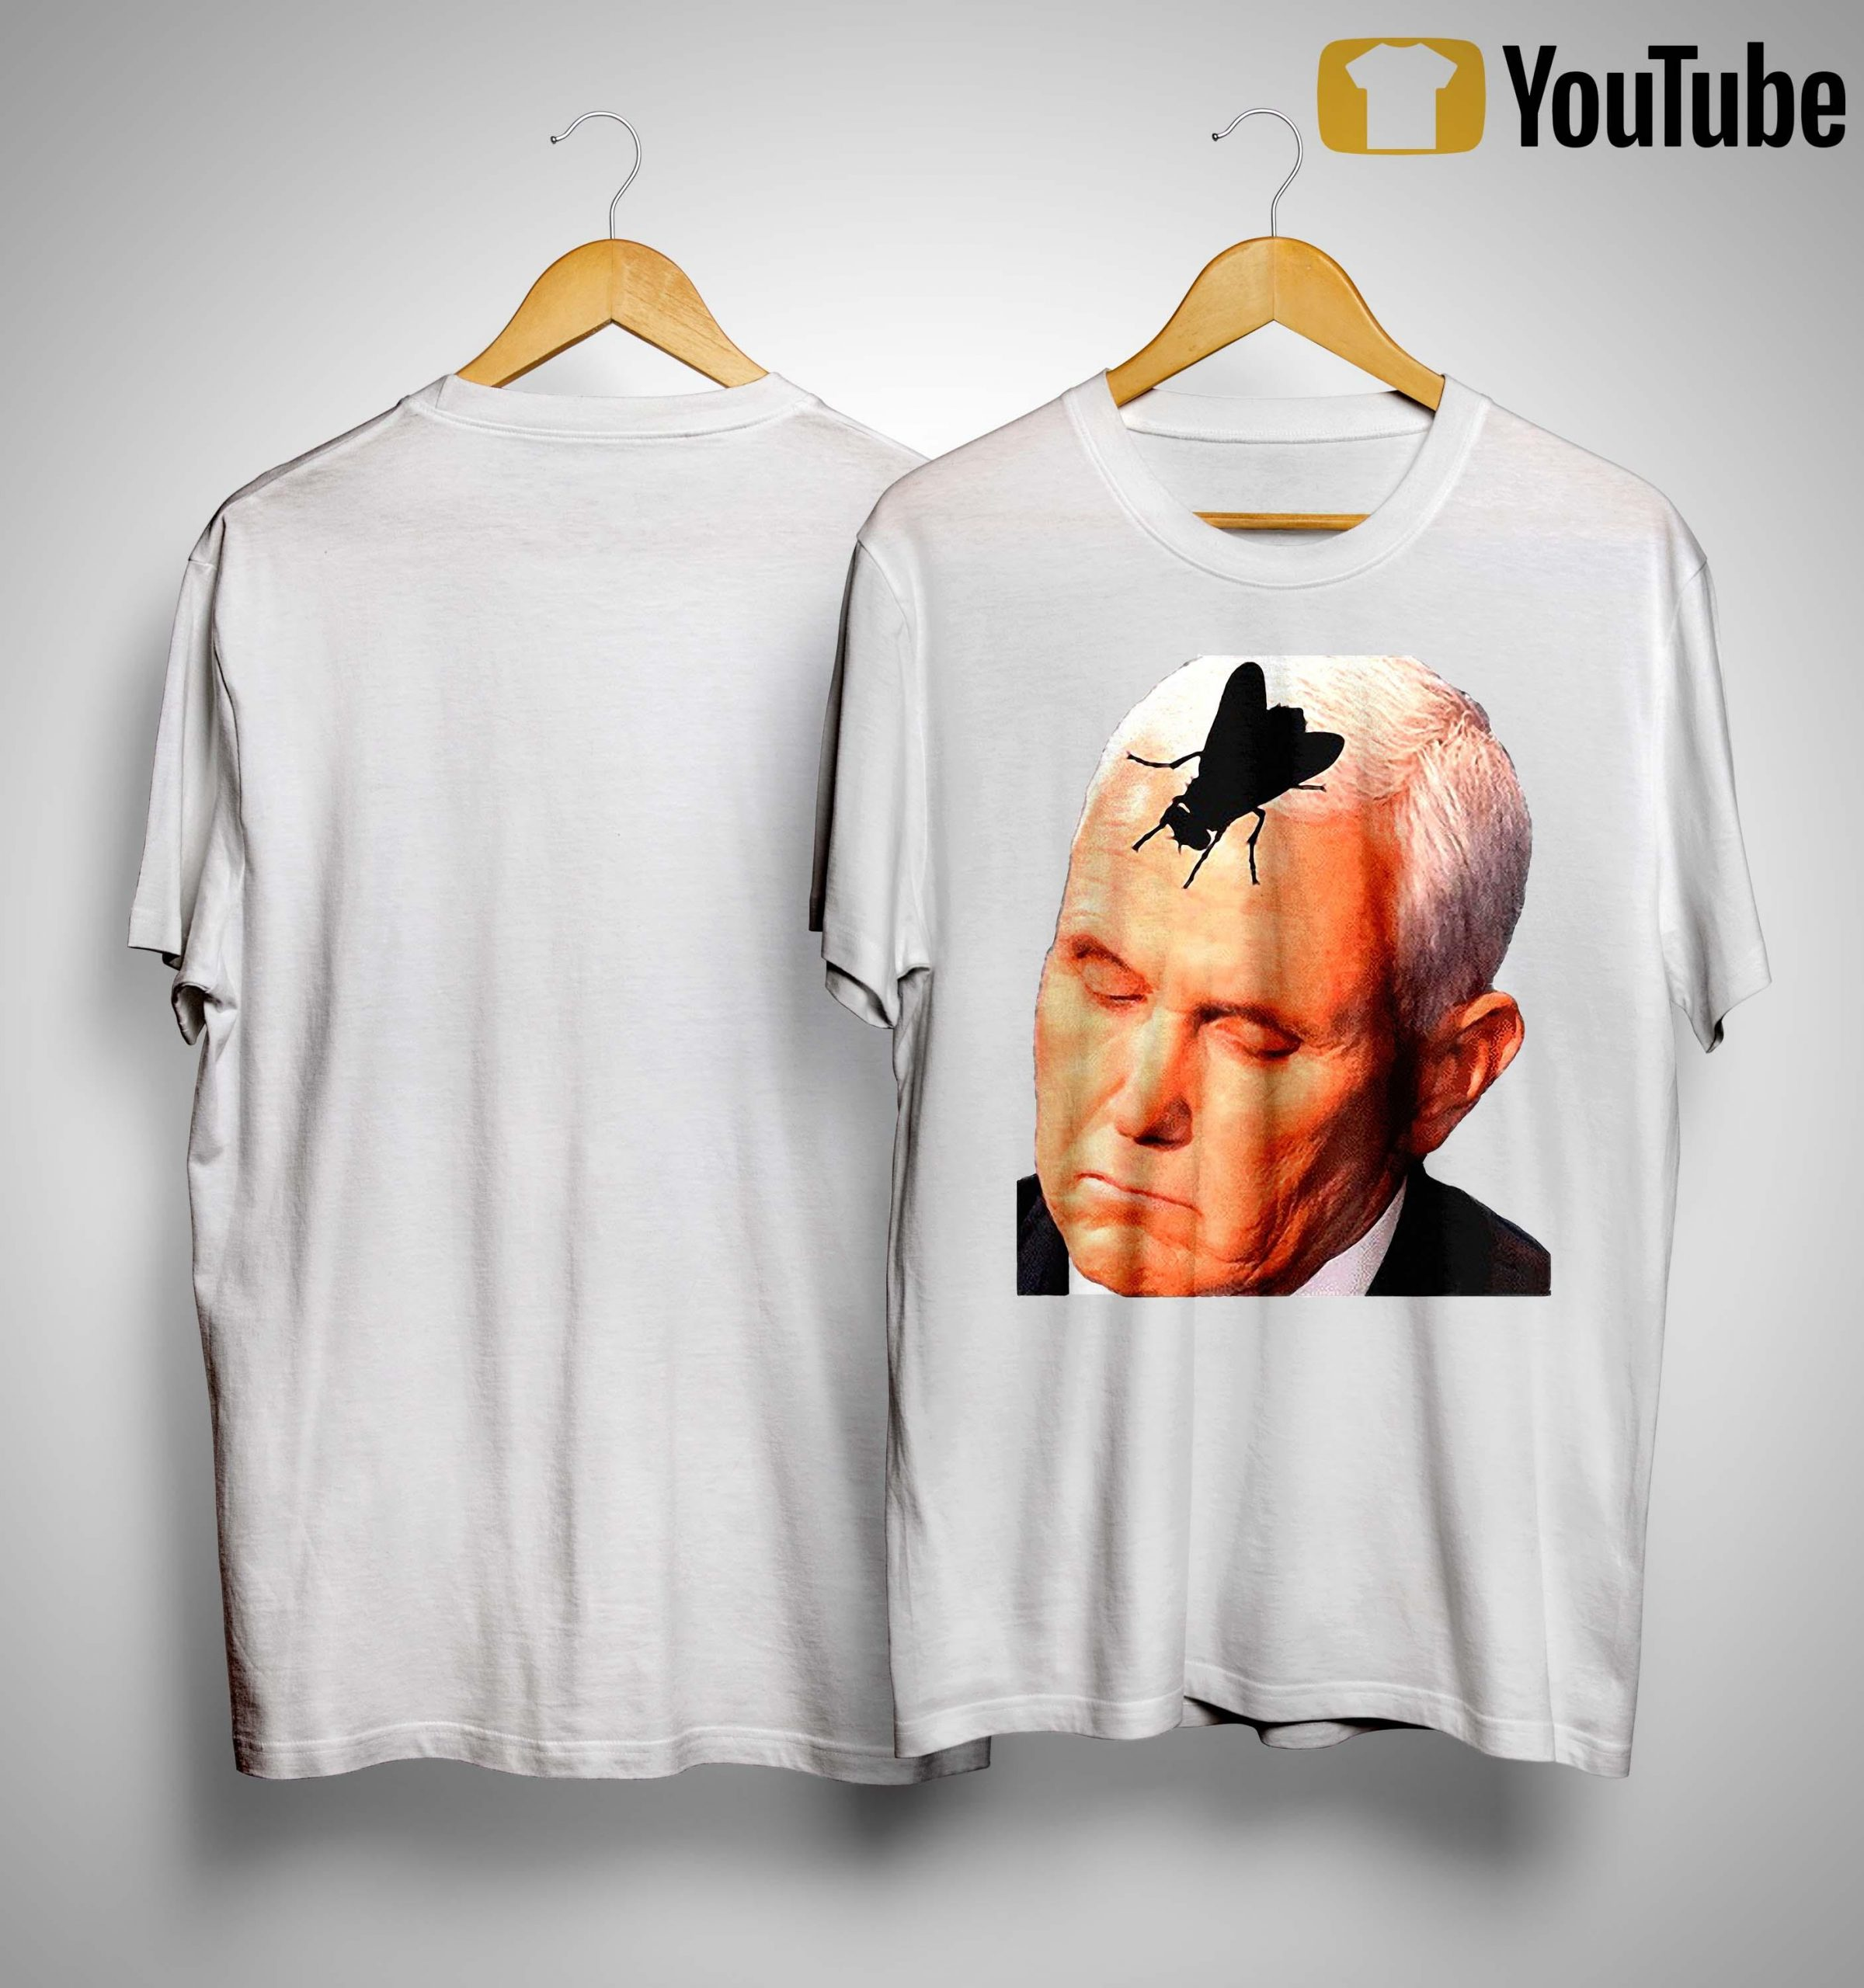 Vice President Mike Pence With Fly On The Head Shirt